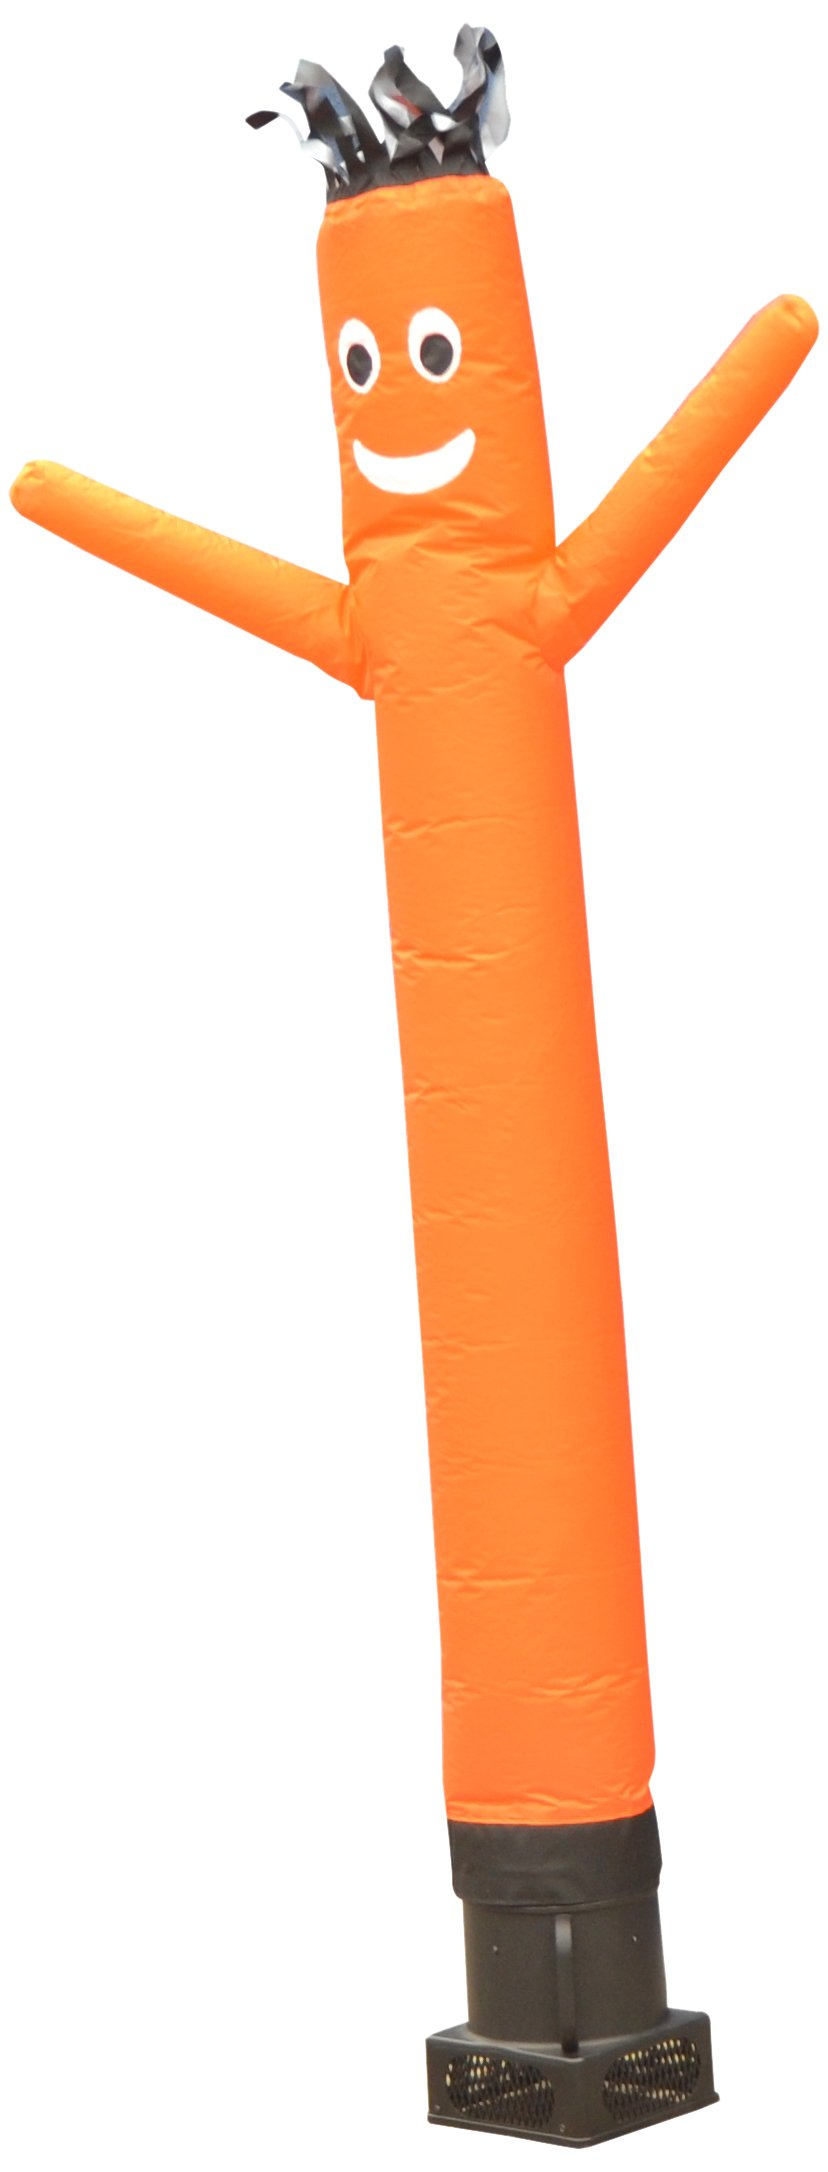 LookOurWay Air Dancers Inflatable Tube Man Complete Set with 1/4 HP Sky Dancer Blower, 6-Feet, Orange by LookOurWay